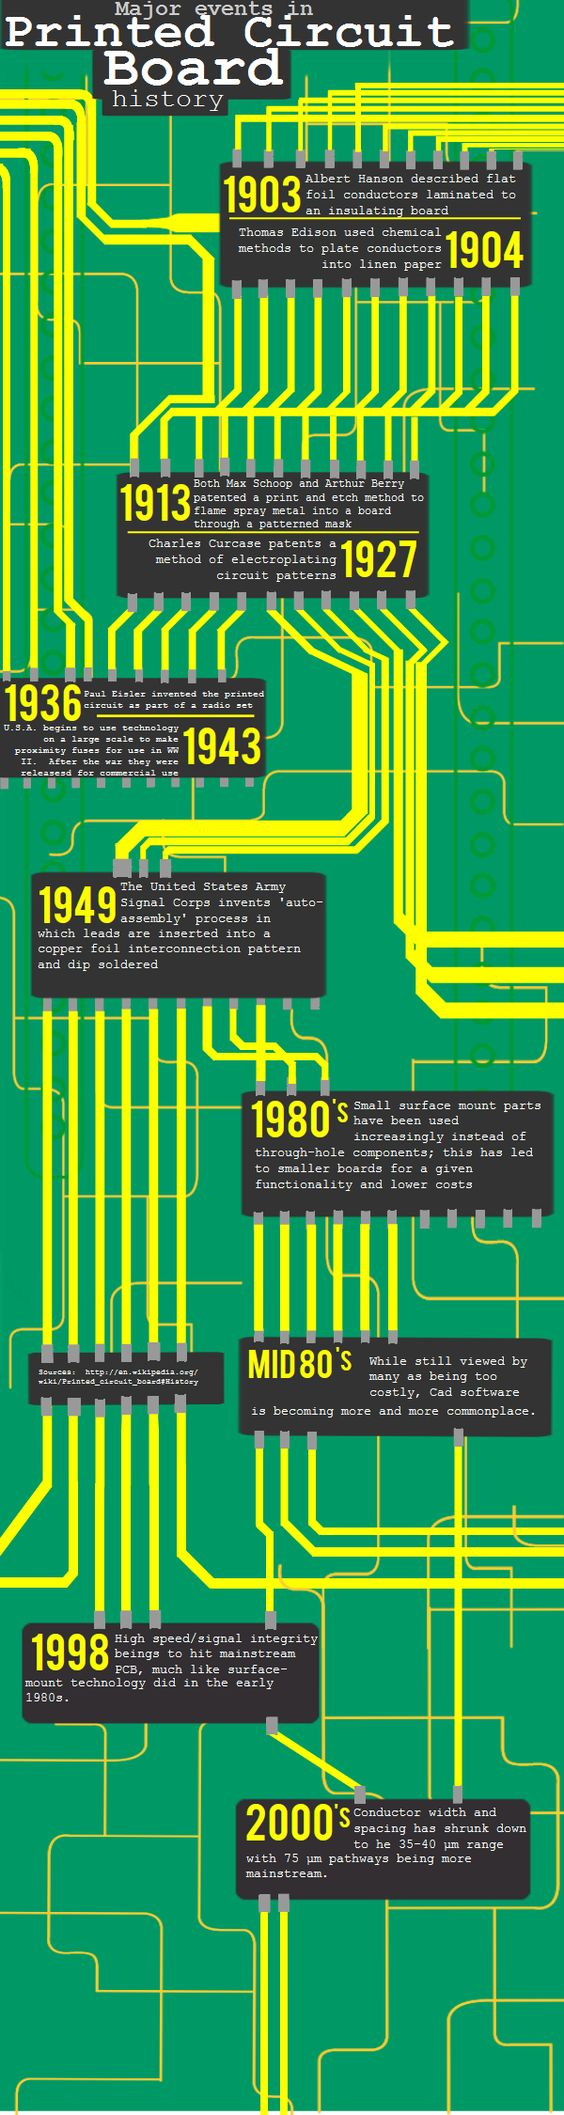 The History of Printed Circuit Boards